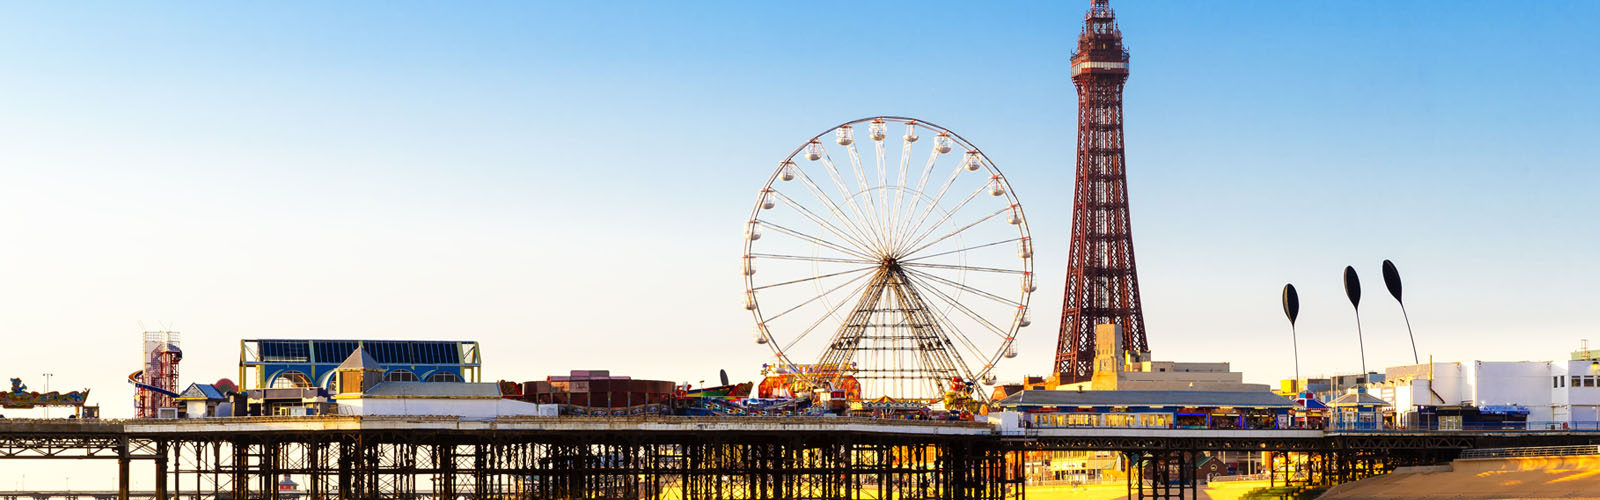 Blackpool Tower and Central Pier Ferris Wheel.